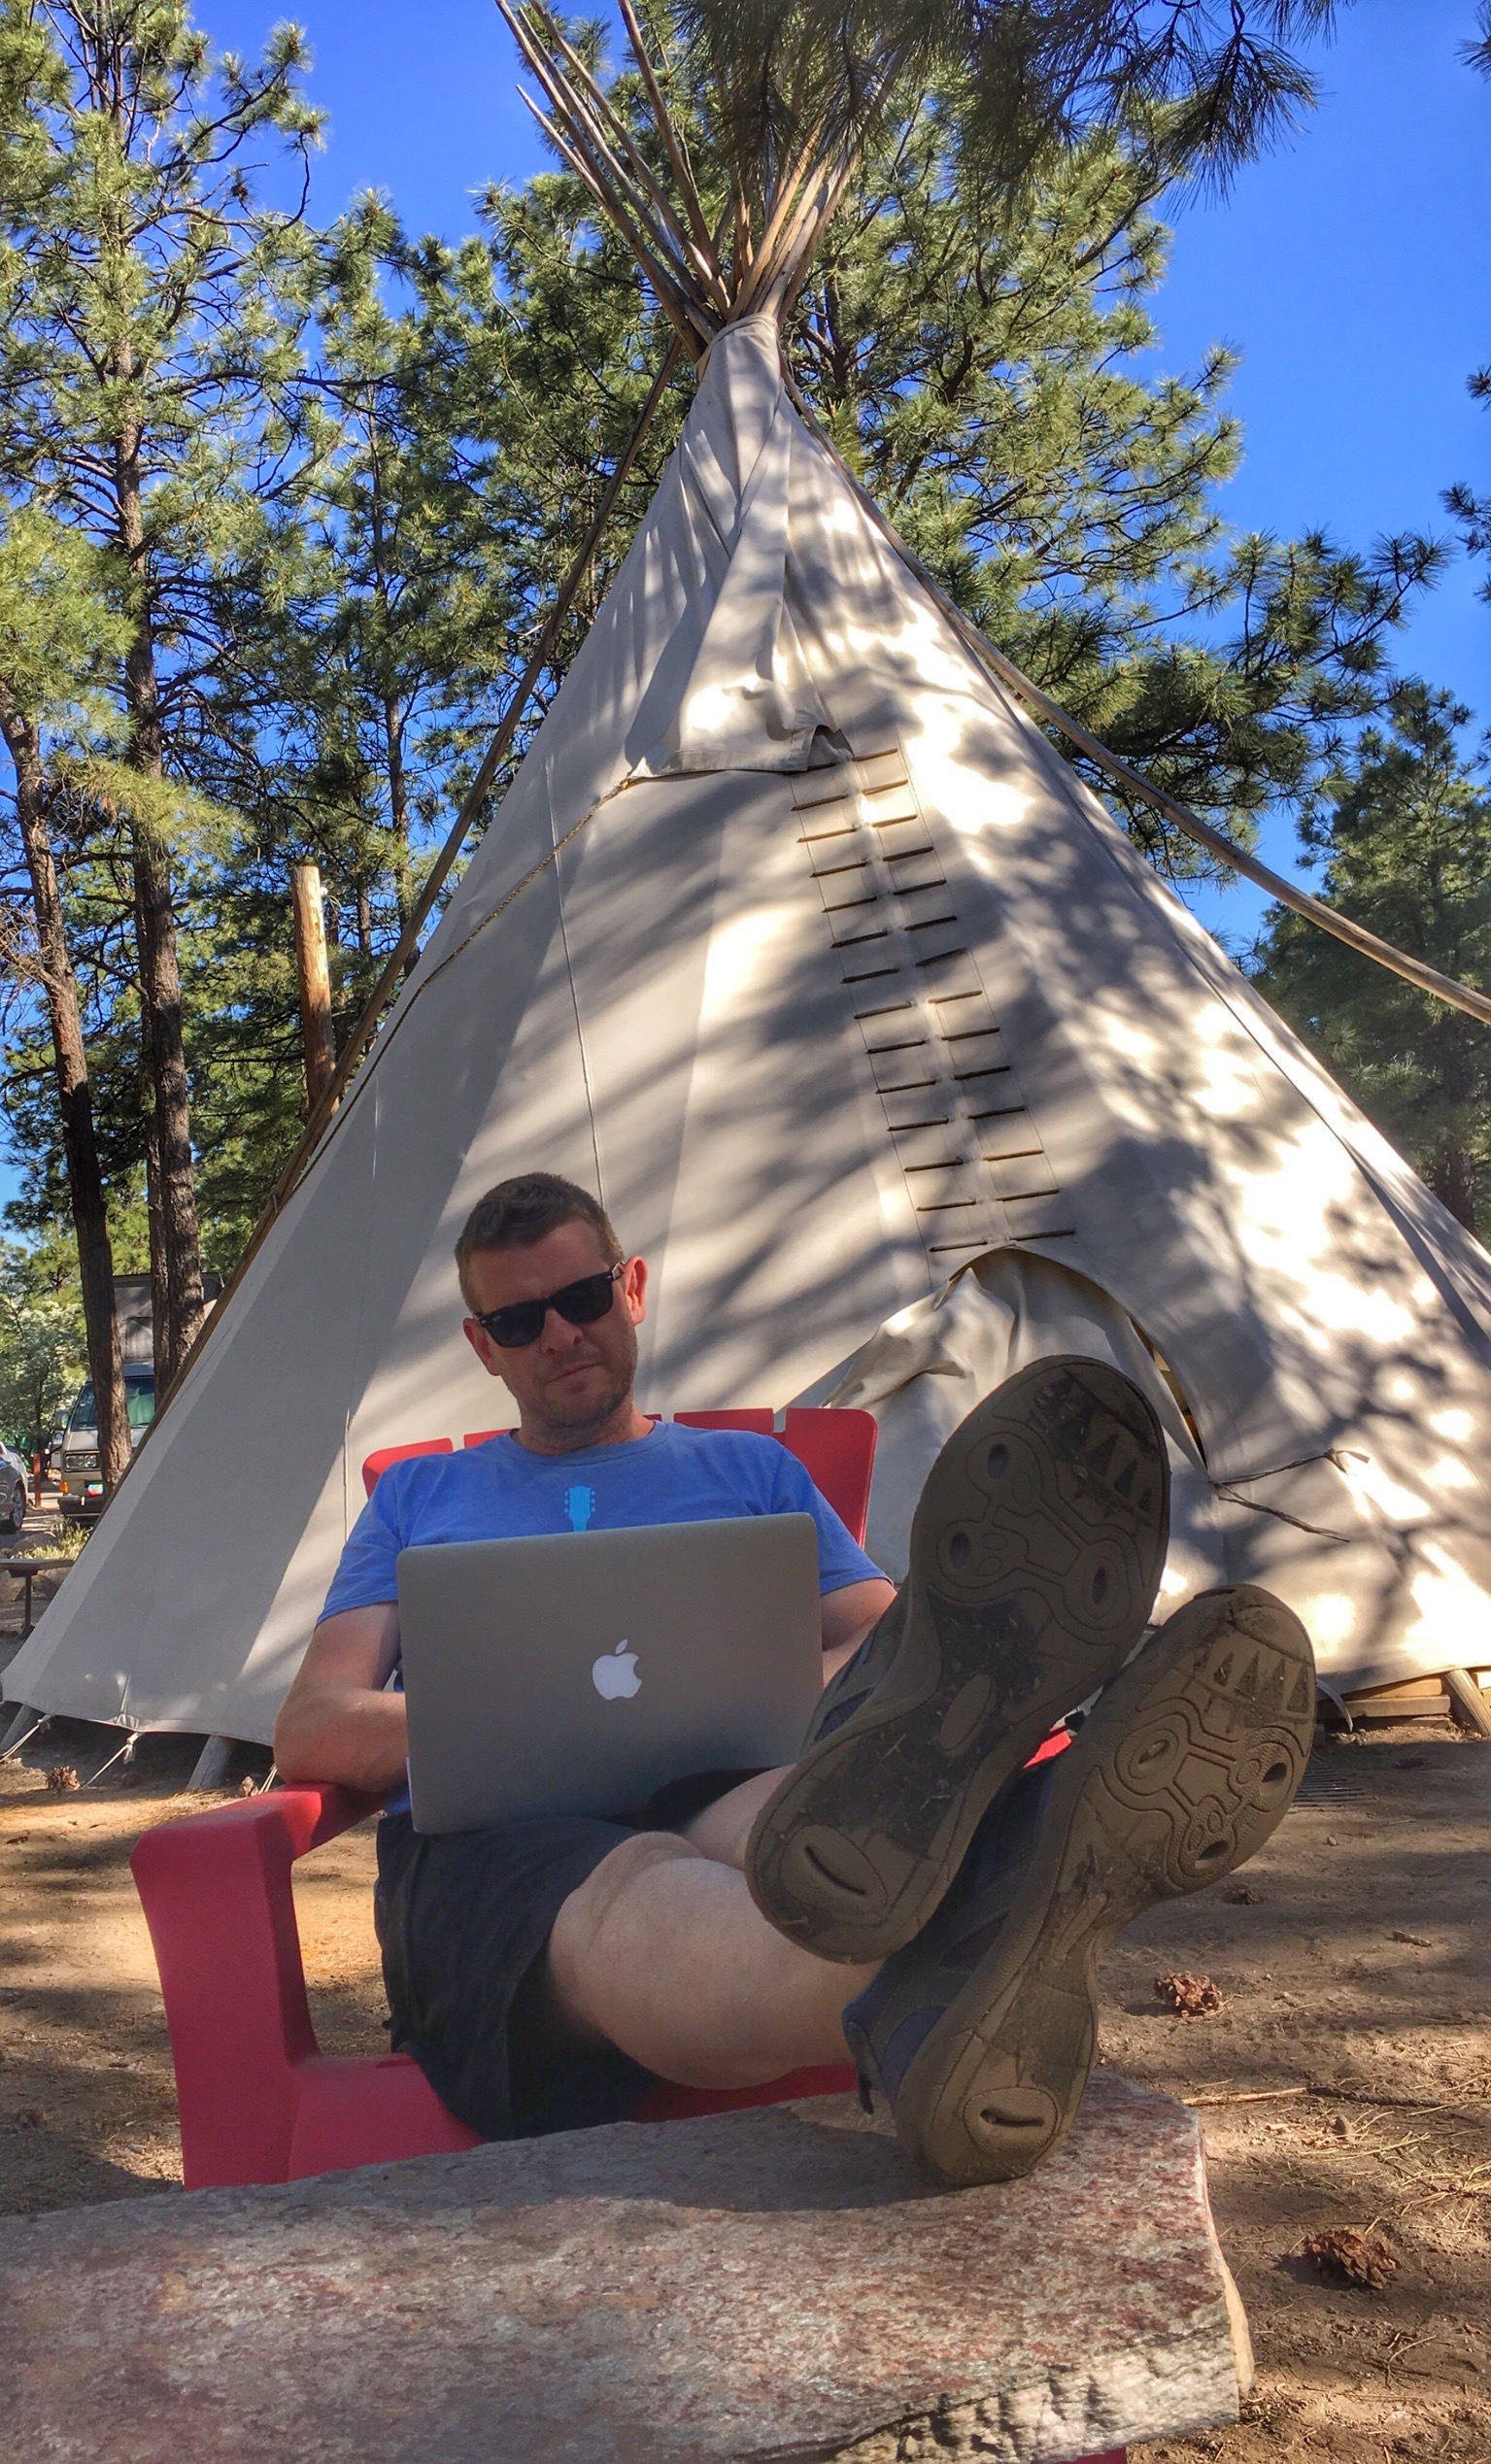 Working remotely from a teepee